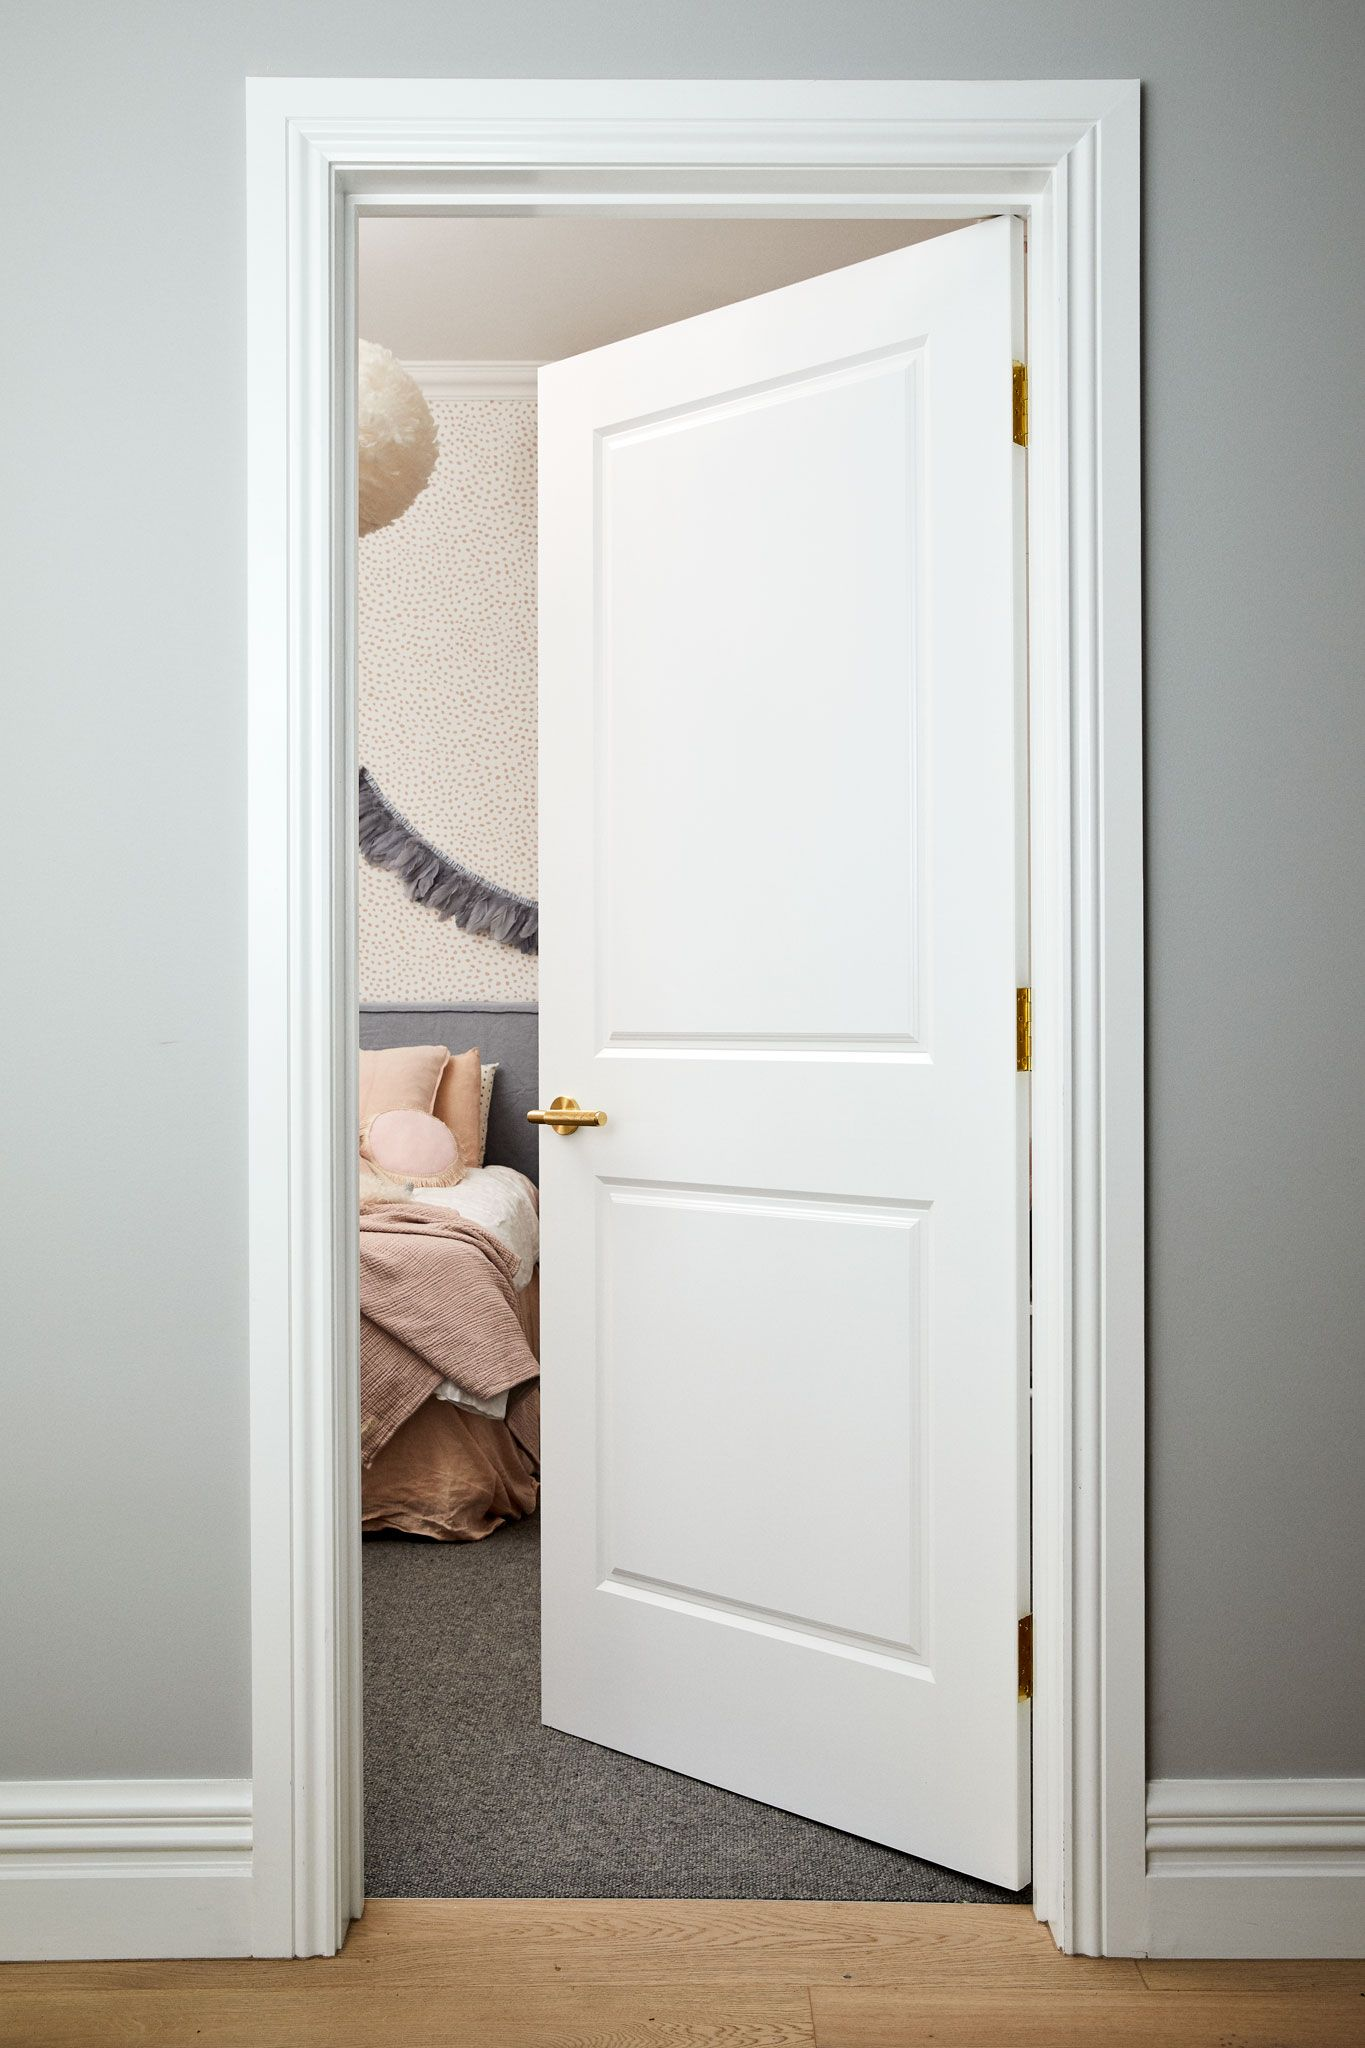 The Norsuhome Annabel S Bedroom Door Paint Dulux Tranquil Retreat White